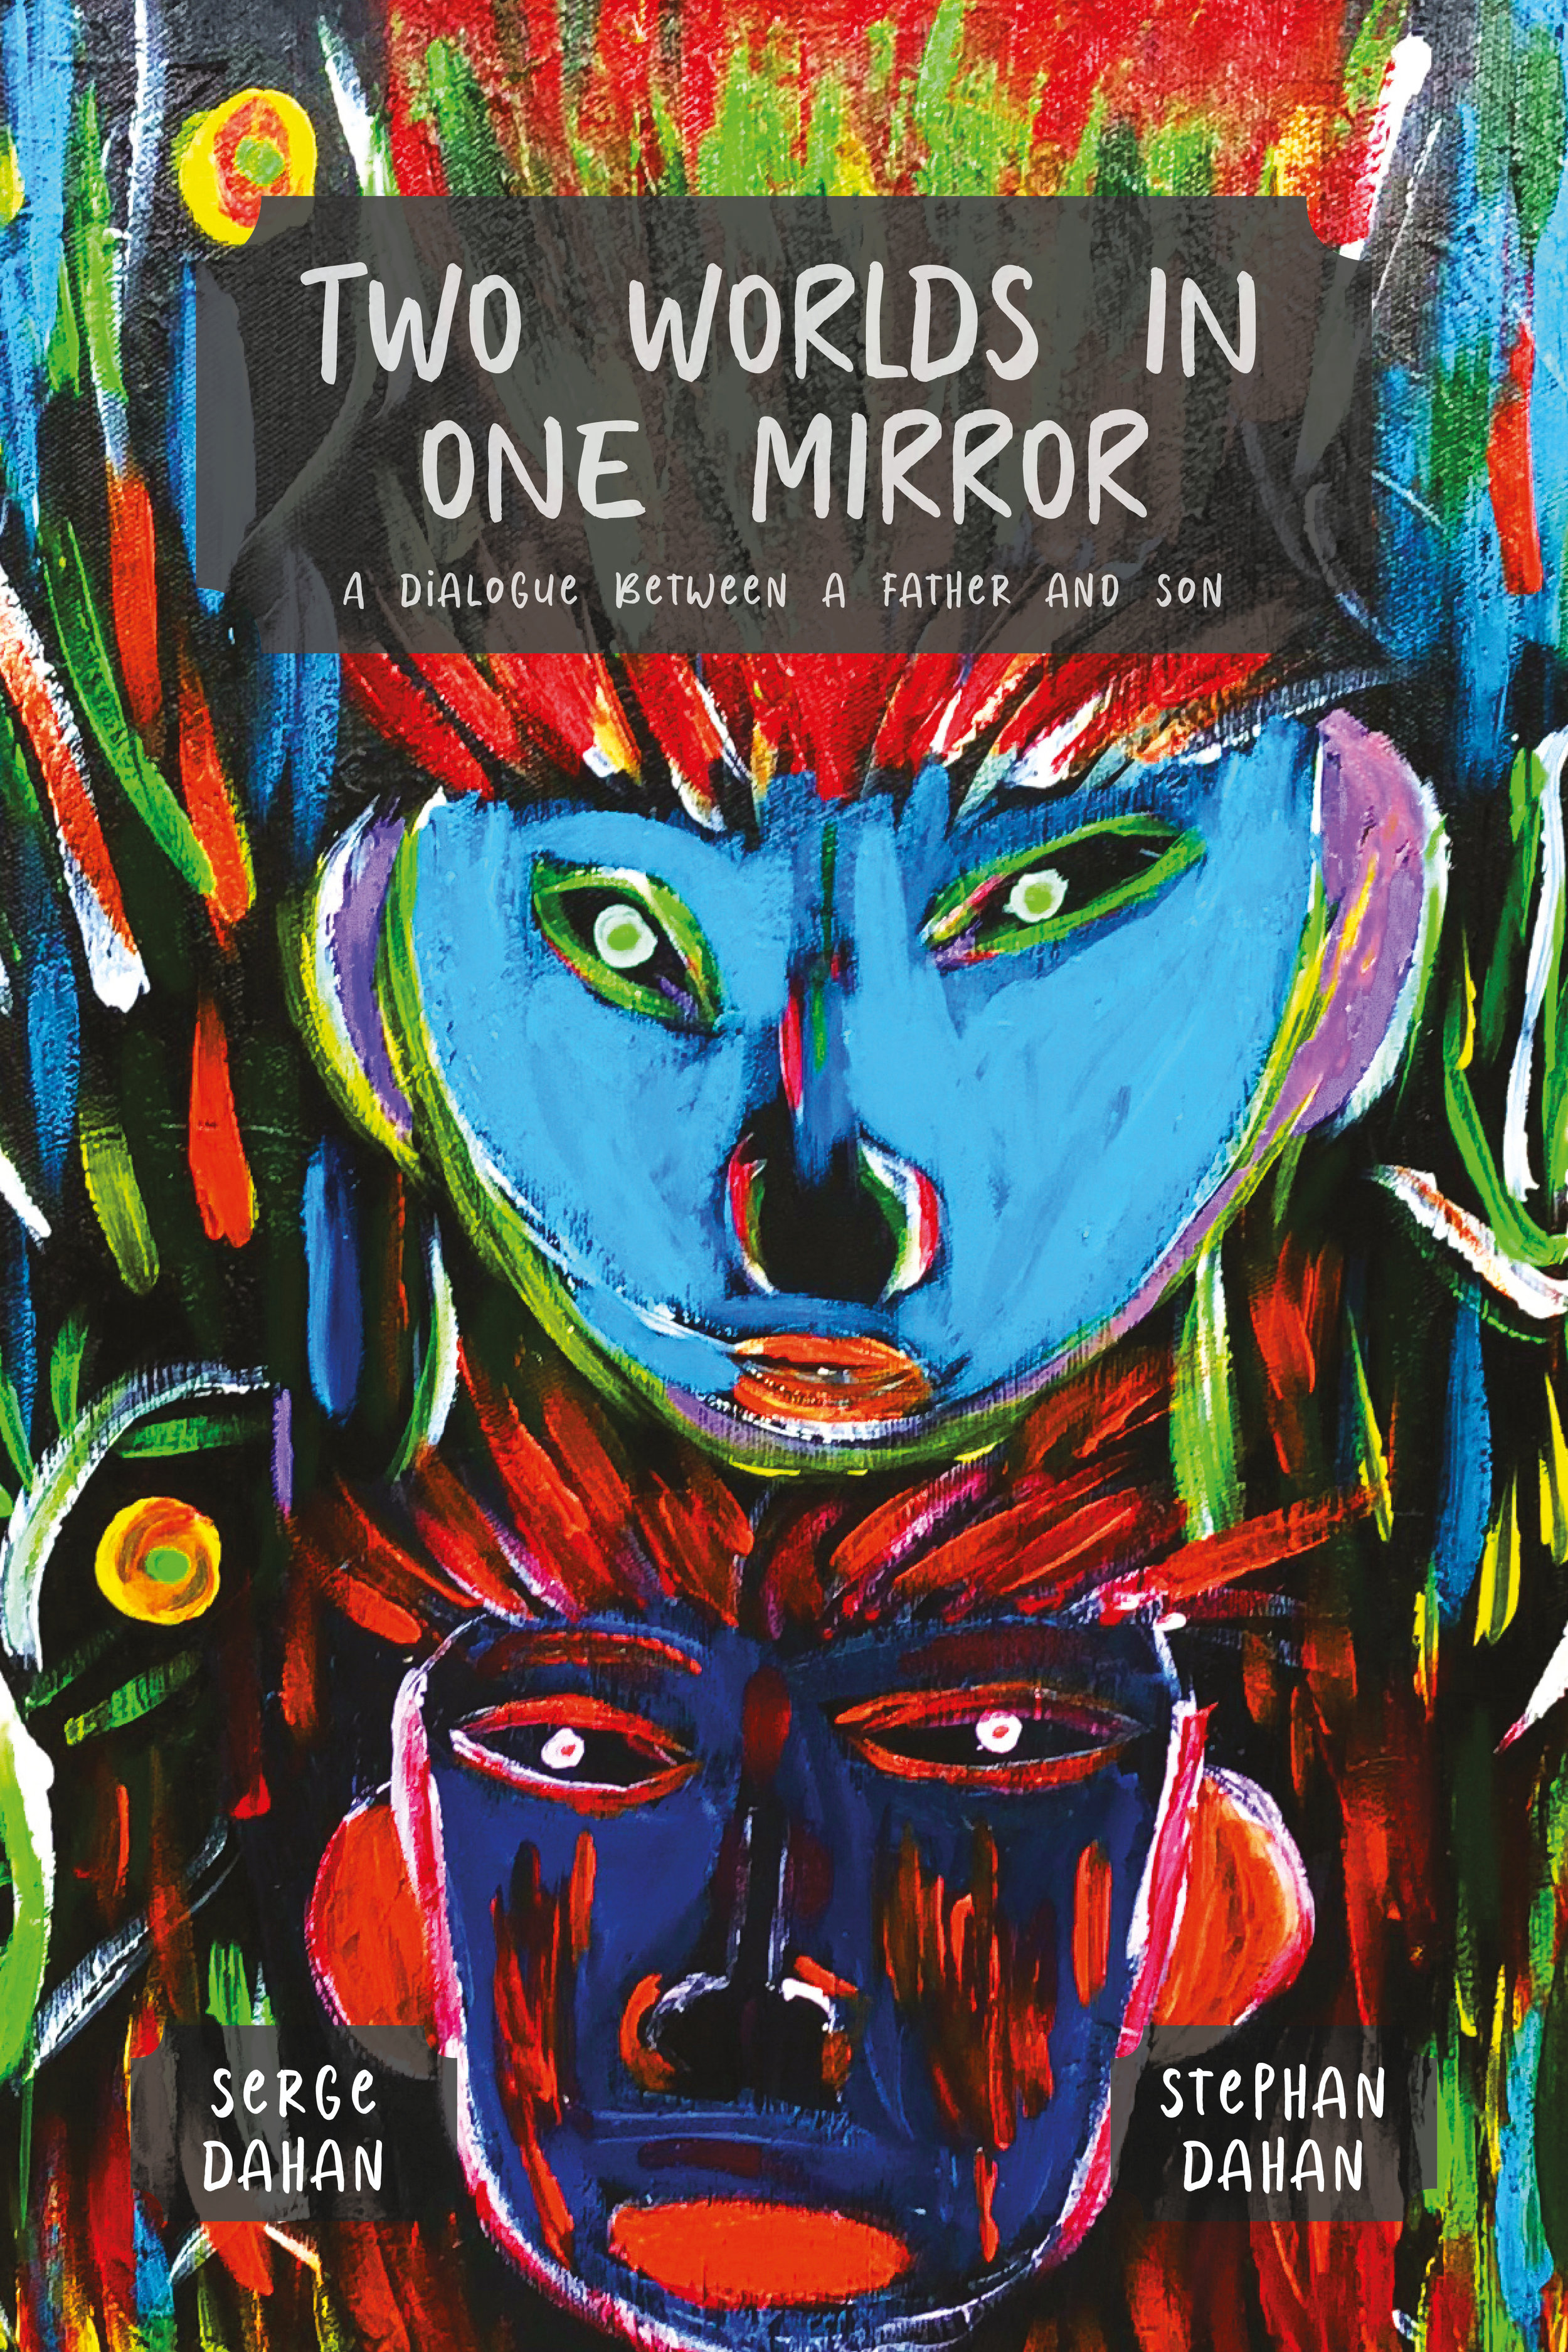 Two Worlds in One Mirror by Serge Dahan and Stephan Dahan